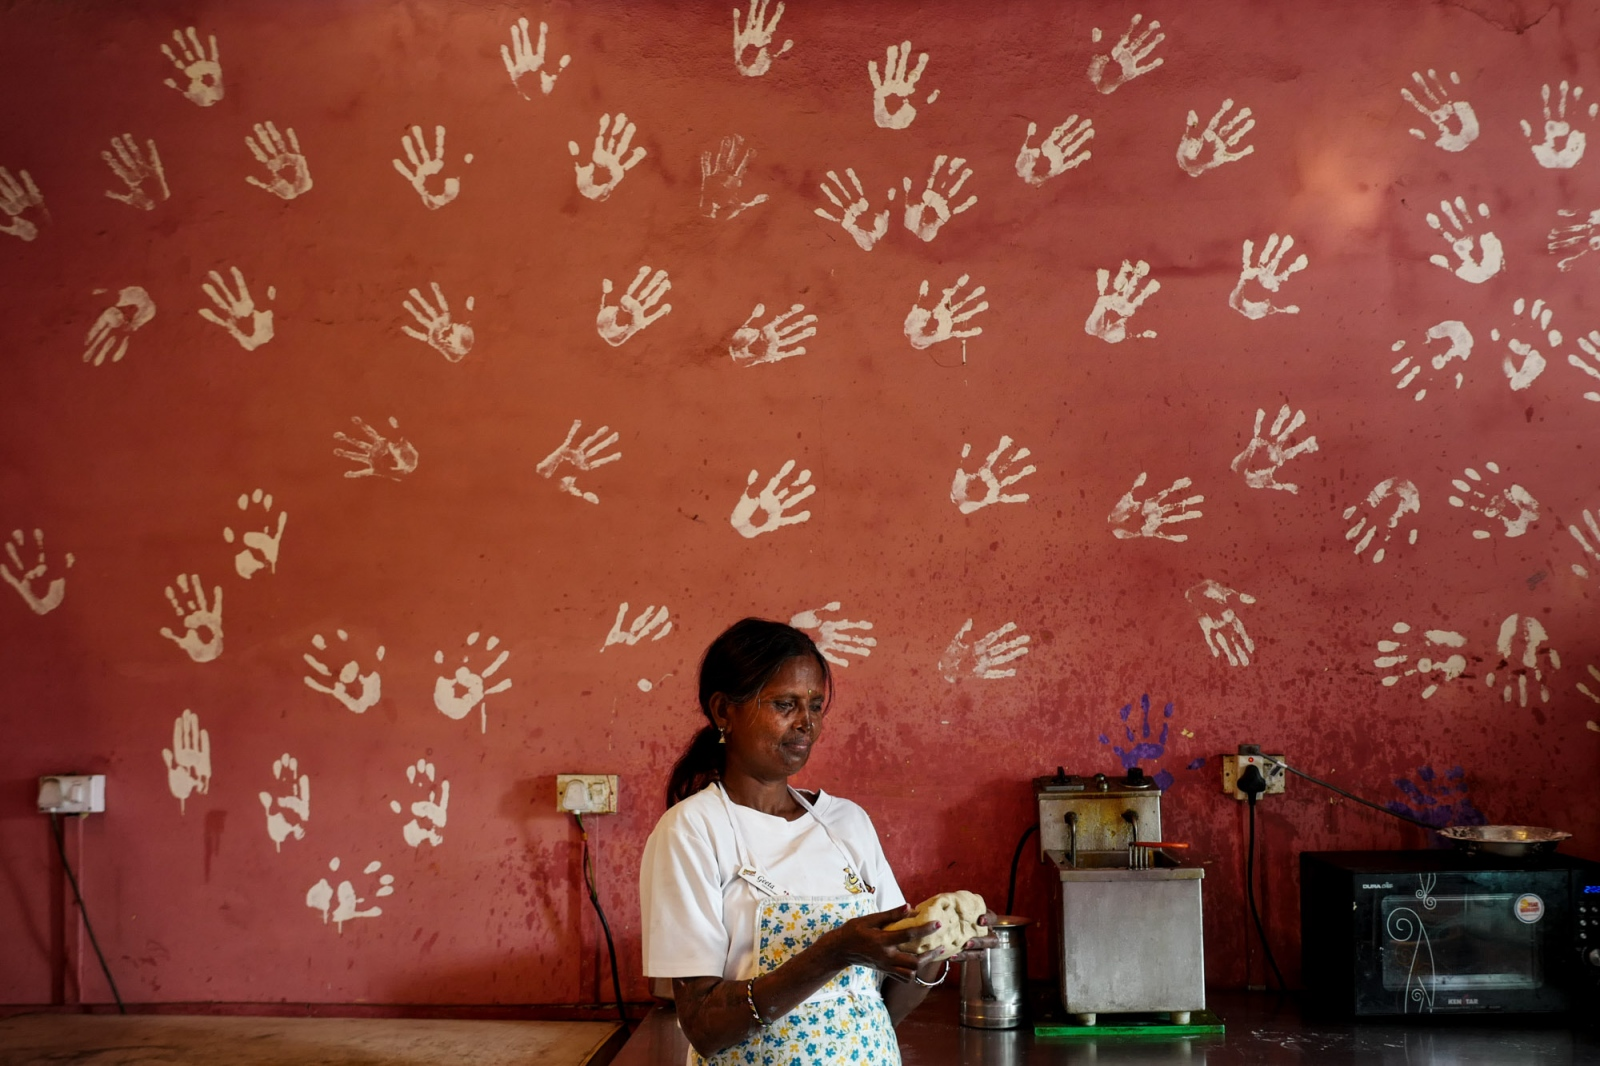 Agra, Uttar Pradesh, India. 02 November 2015. Gita, 45, the oldest survivor among the members of the Stop Acid Attack campaign, works in the kitchen at the Sheroes Hangout cafè. On the wall the imprints of all the survivors' hands. Gita poses for a portrait in the Kitchen where she's baking bread.